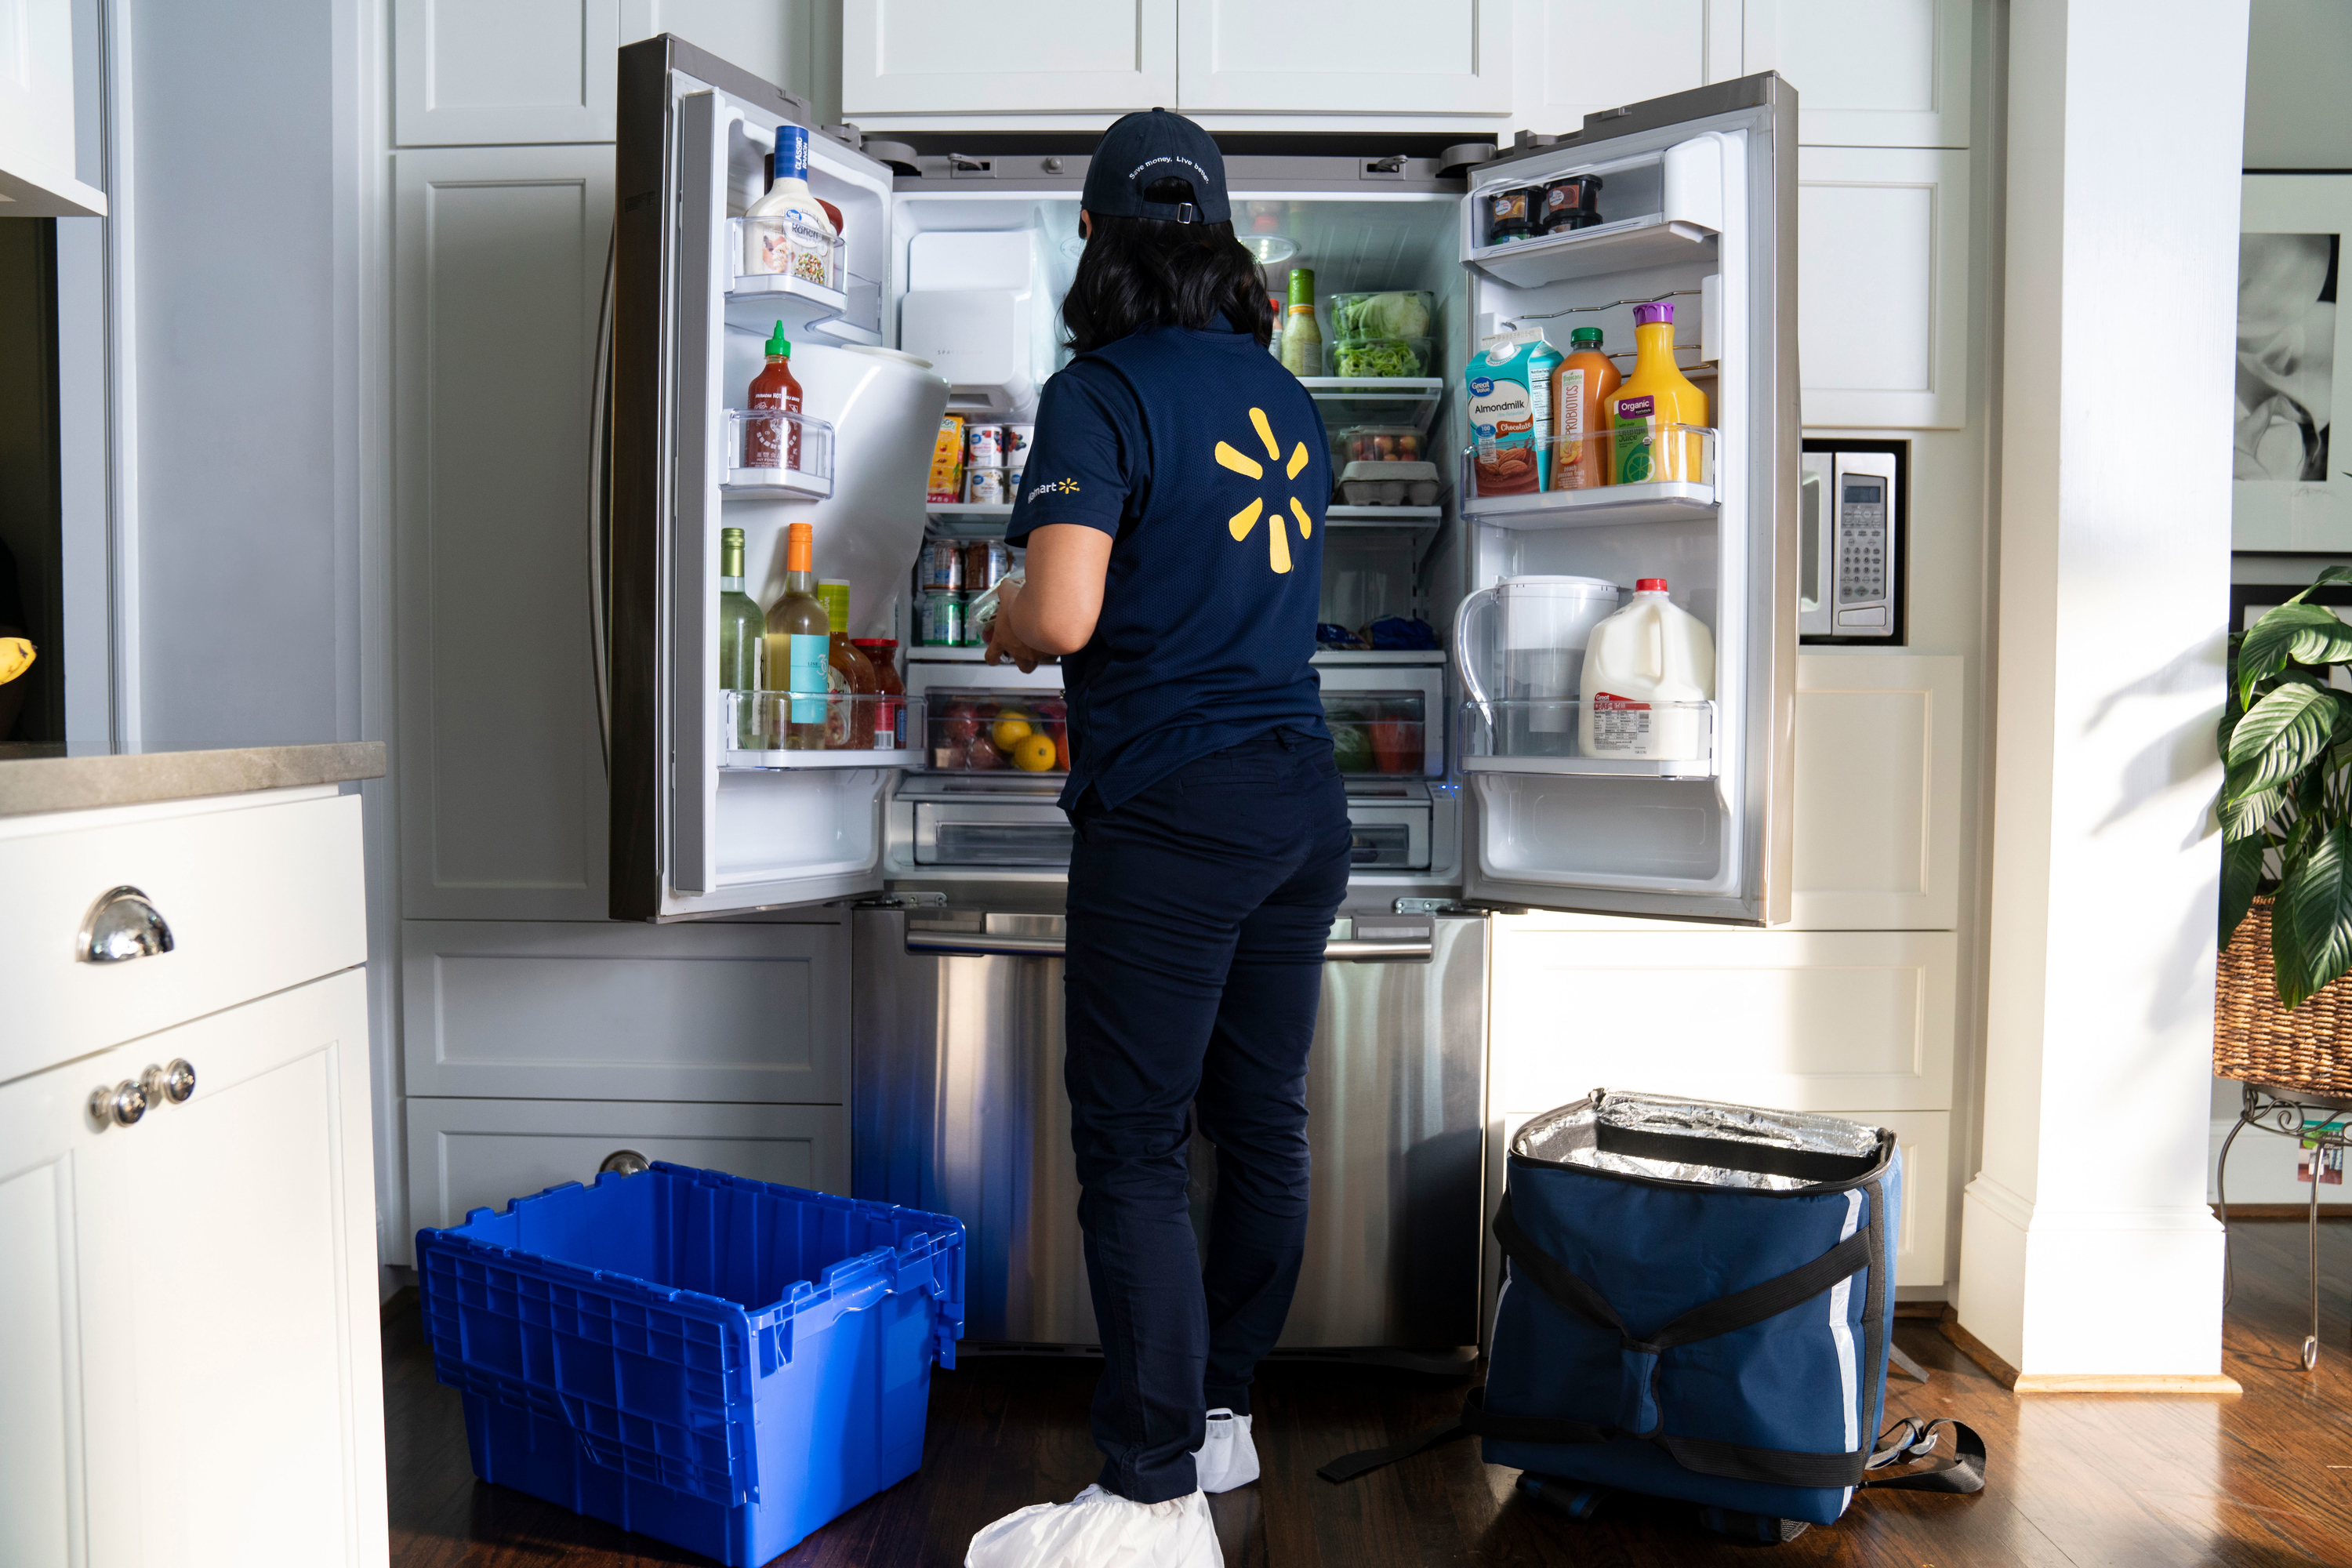 Soon, Walmart will put groceries right in the fridge while youre out